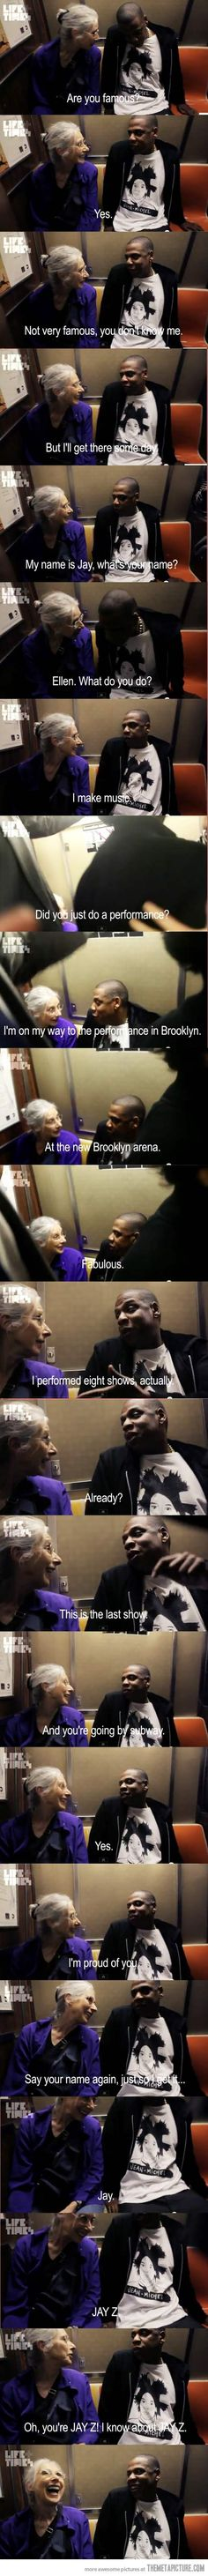 I just love that Jay-Z was so sweet about the whole thing. I love his face at the end